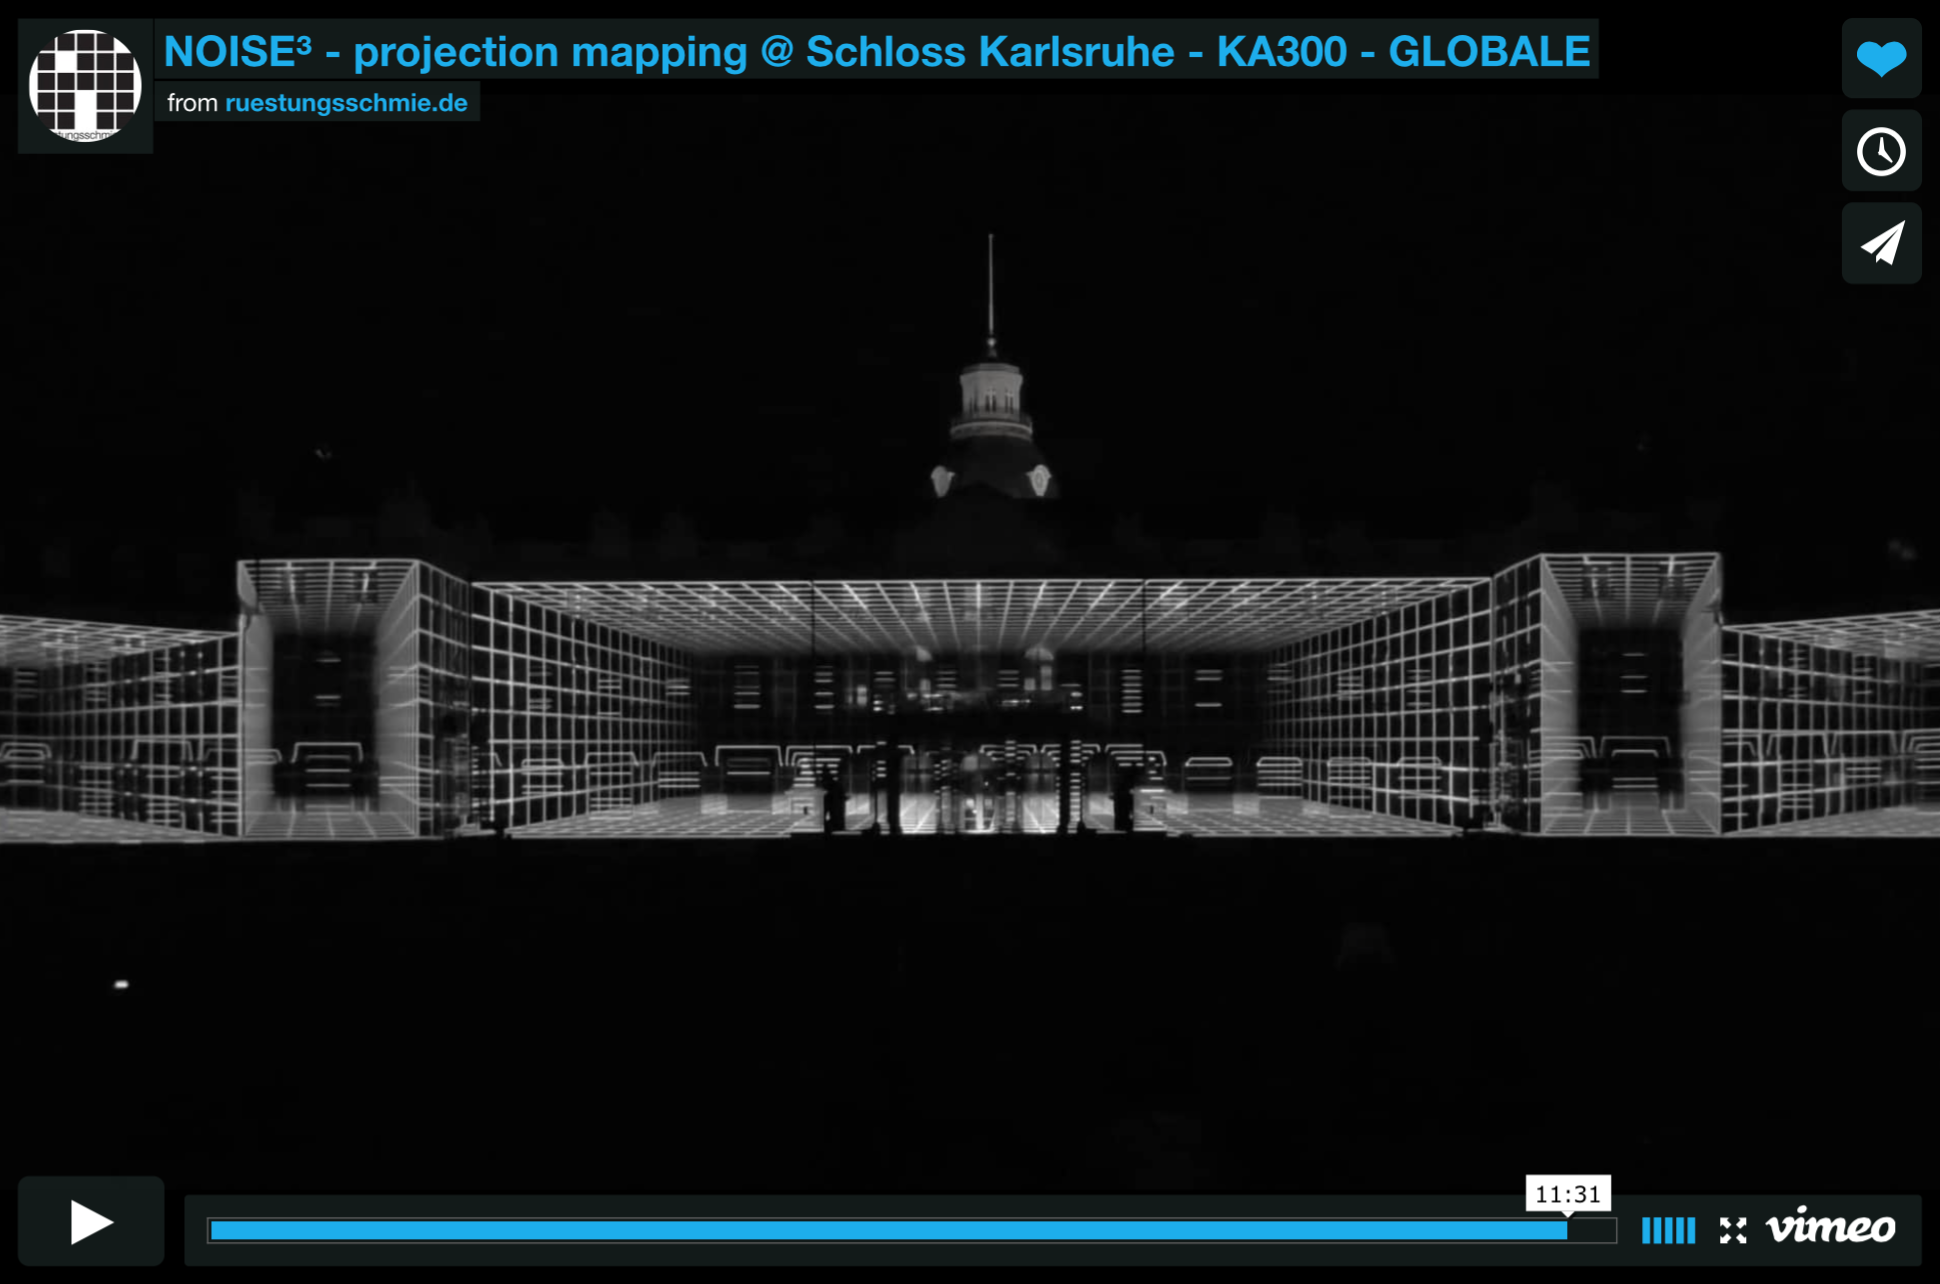 NOISE³ - projection mapping Schloss Karlsruhe